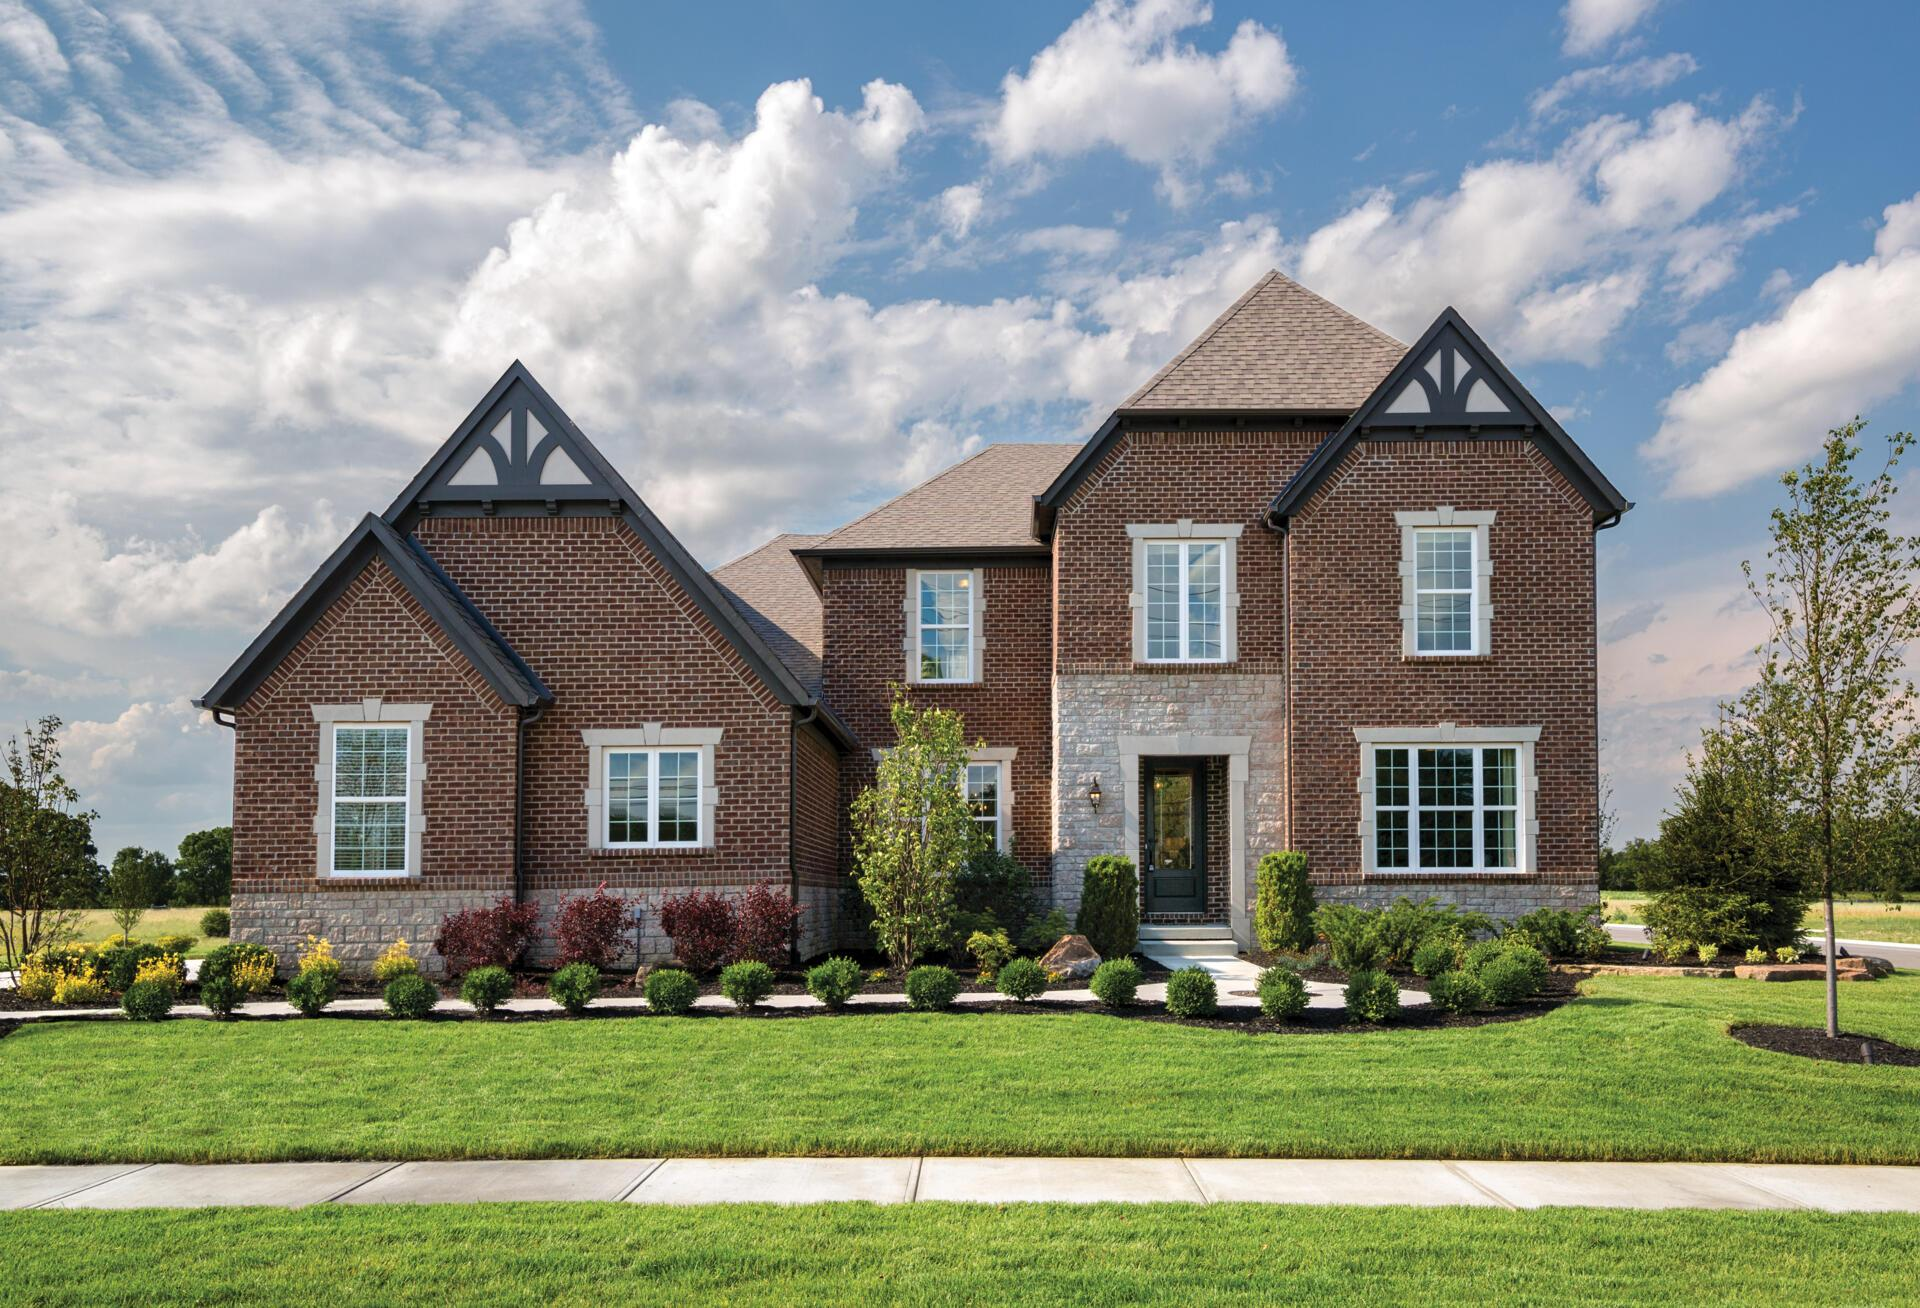 The Crestwood D Exterior